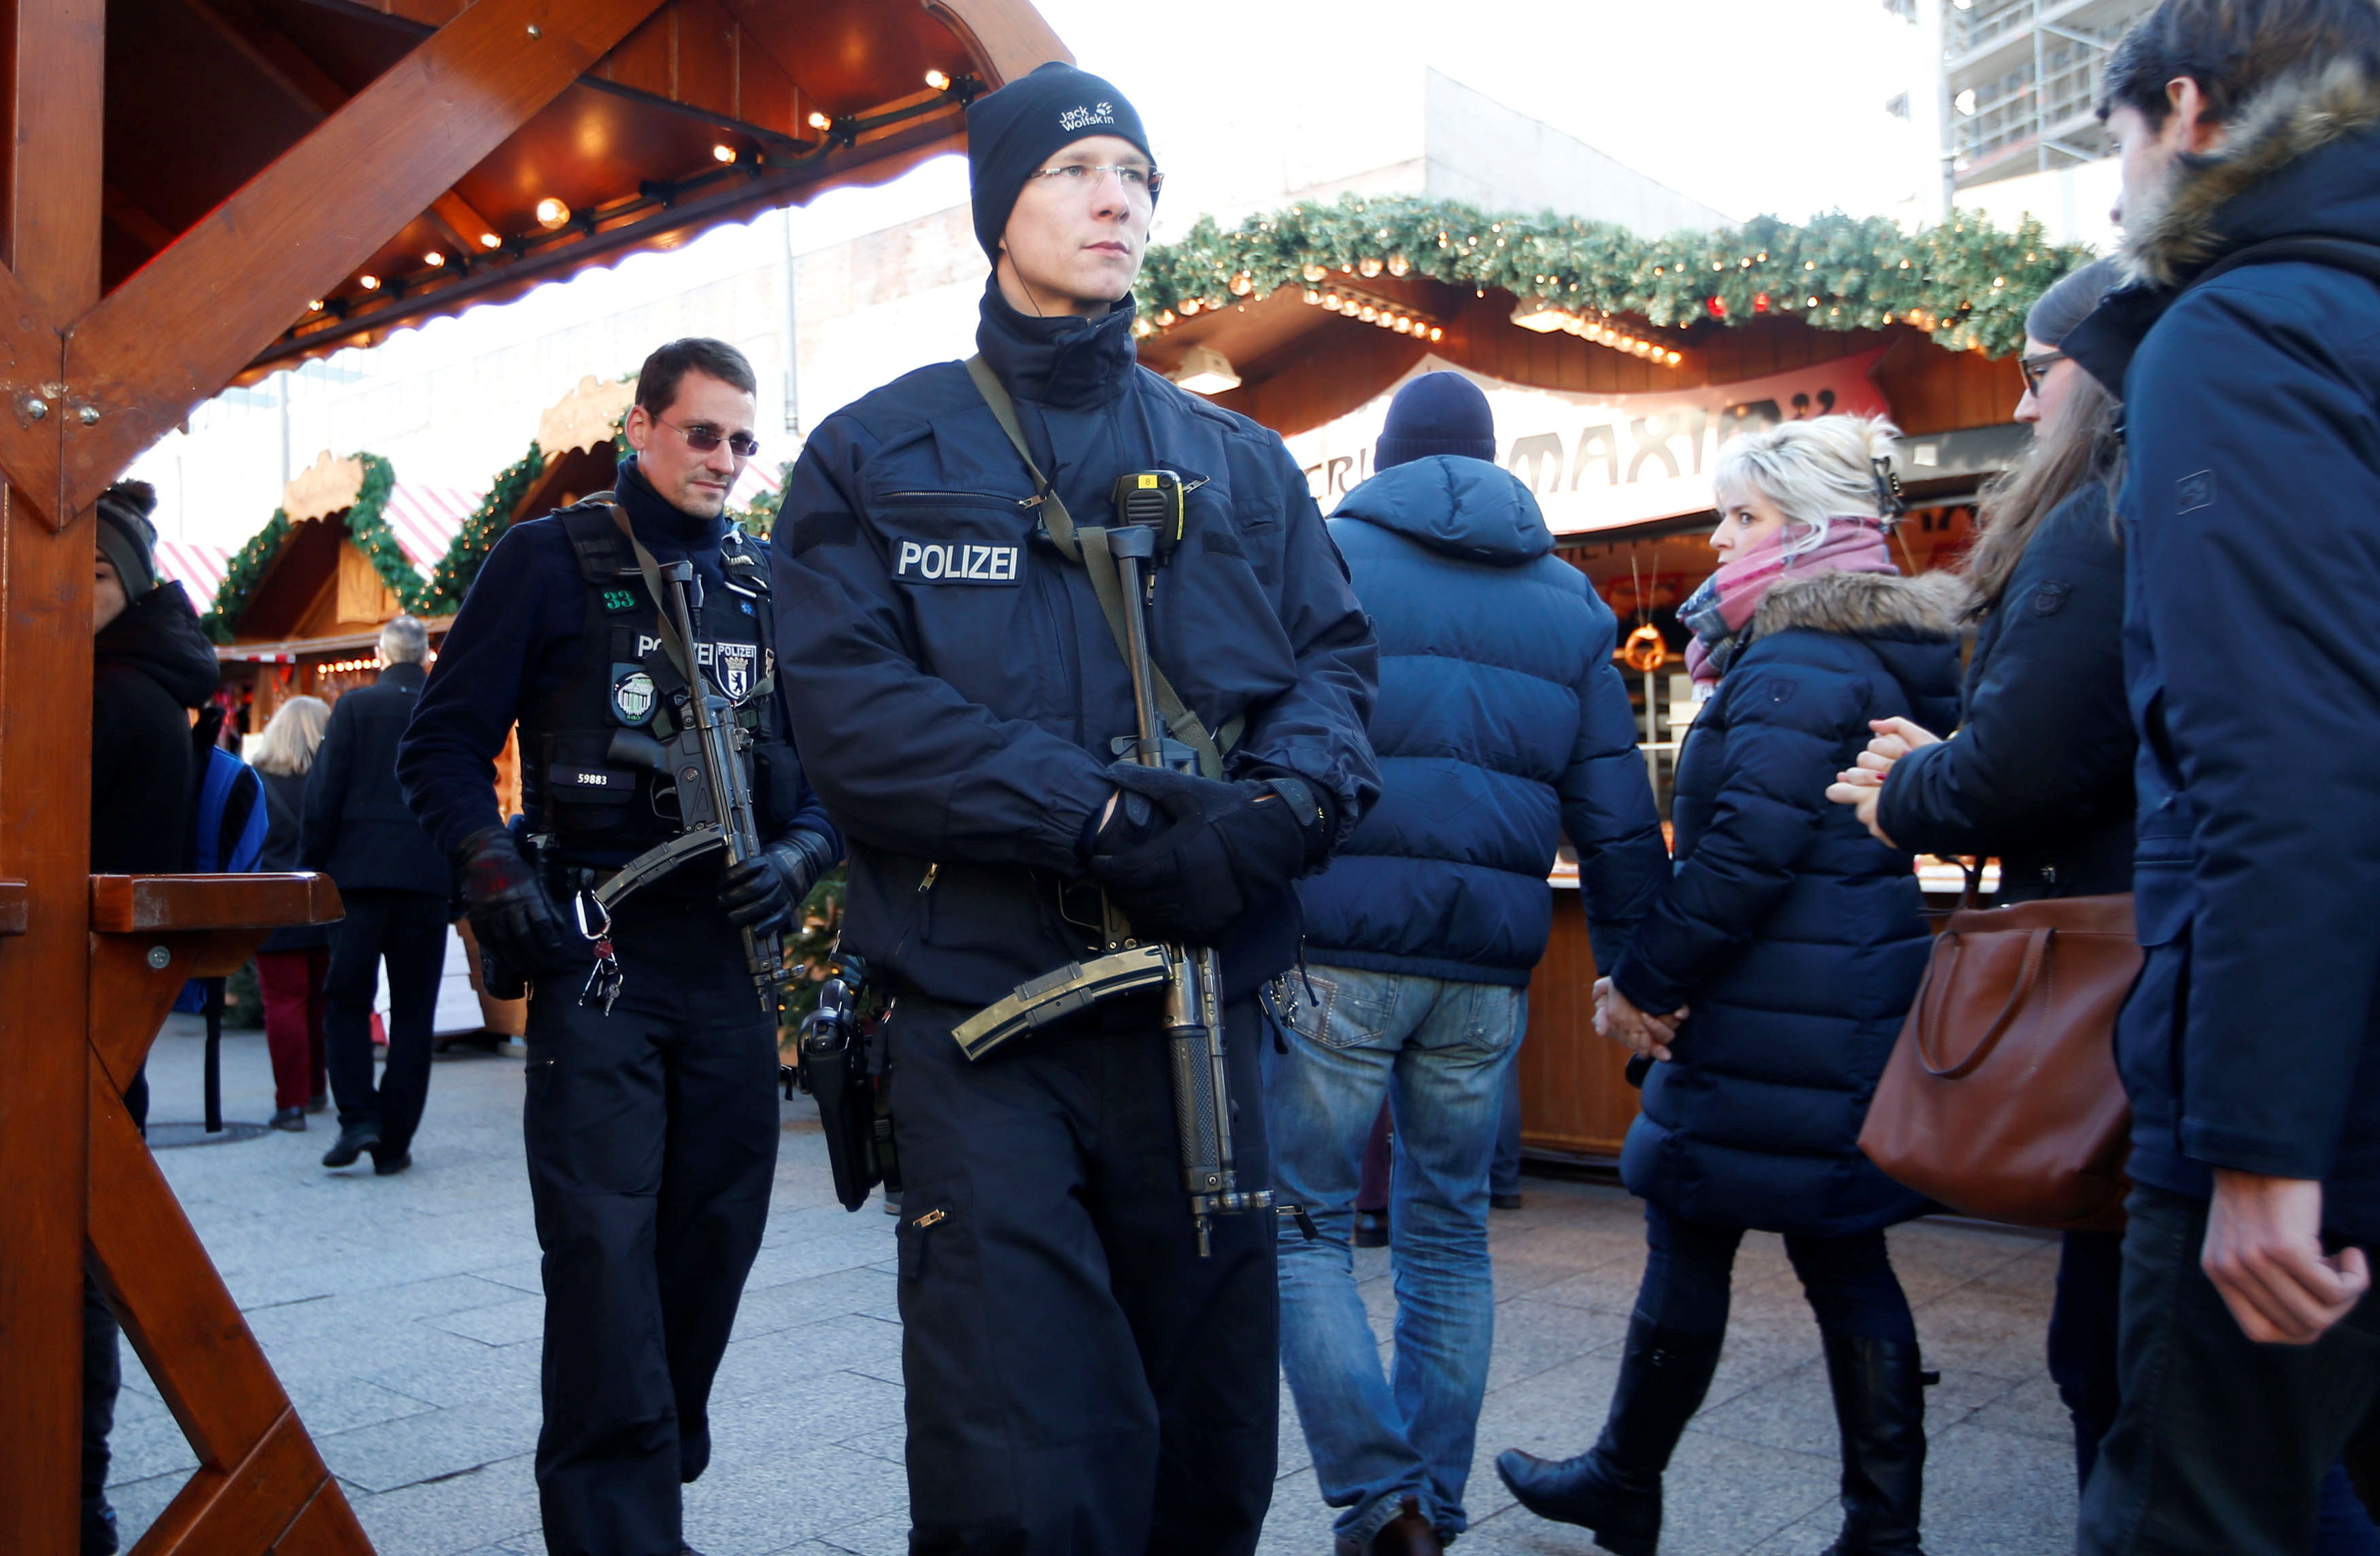 German police patrol with submachine guns at the Christmas market at Breitscheid square in Berlin, Germany, December 30, 2016, following an attack by a truck which ploughed through a crowd at the market.   REUTERS/Fabrizio Bensch - RTX2WY9P